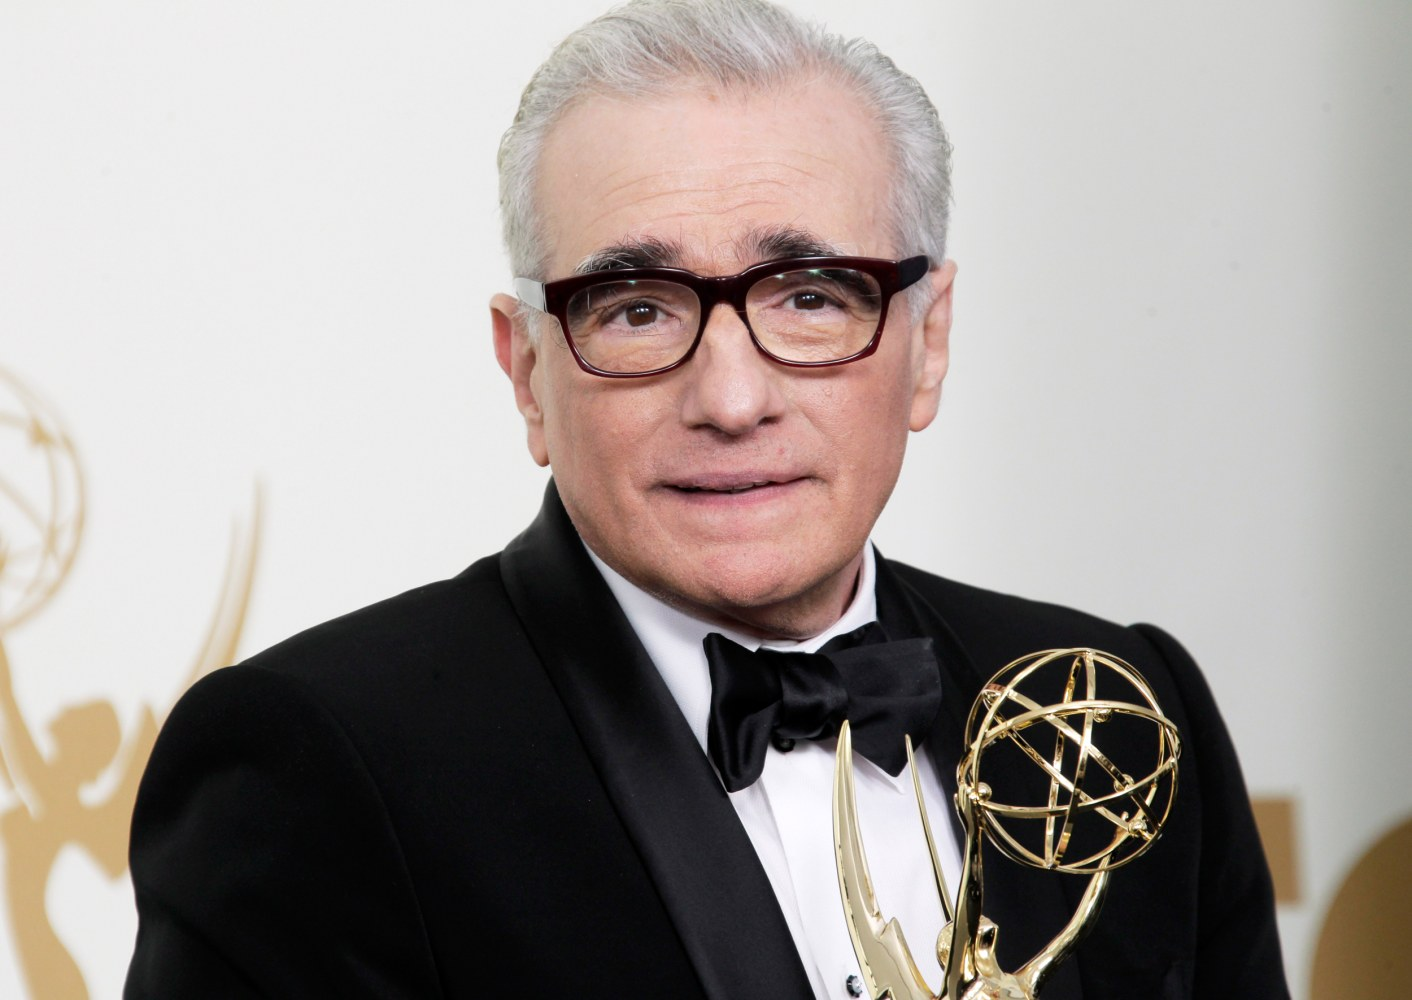 Martin Scorsese Biography | National Endowment for the Humanities